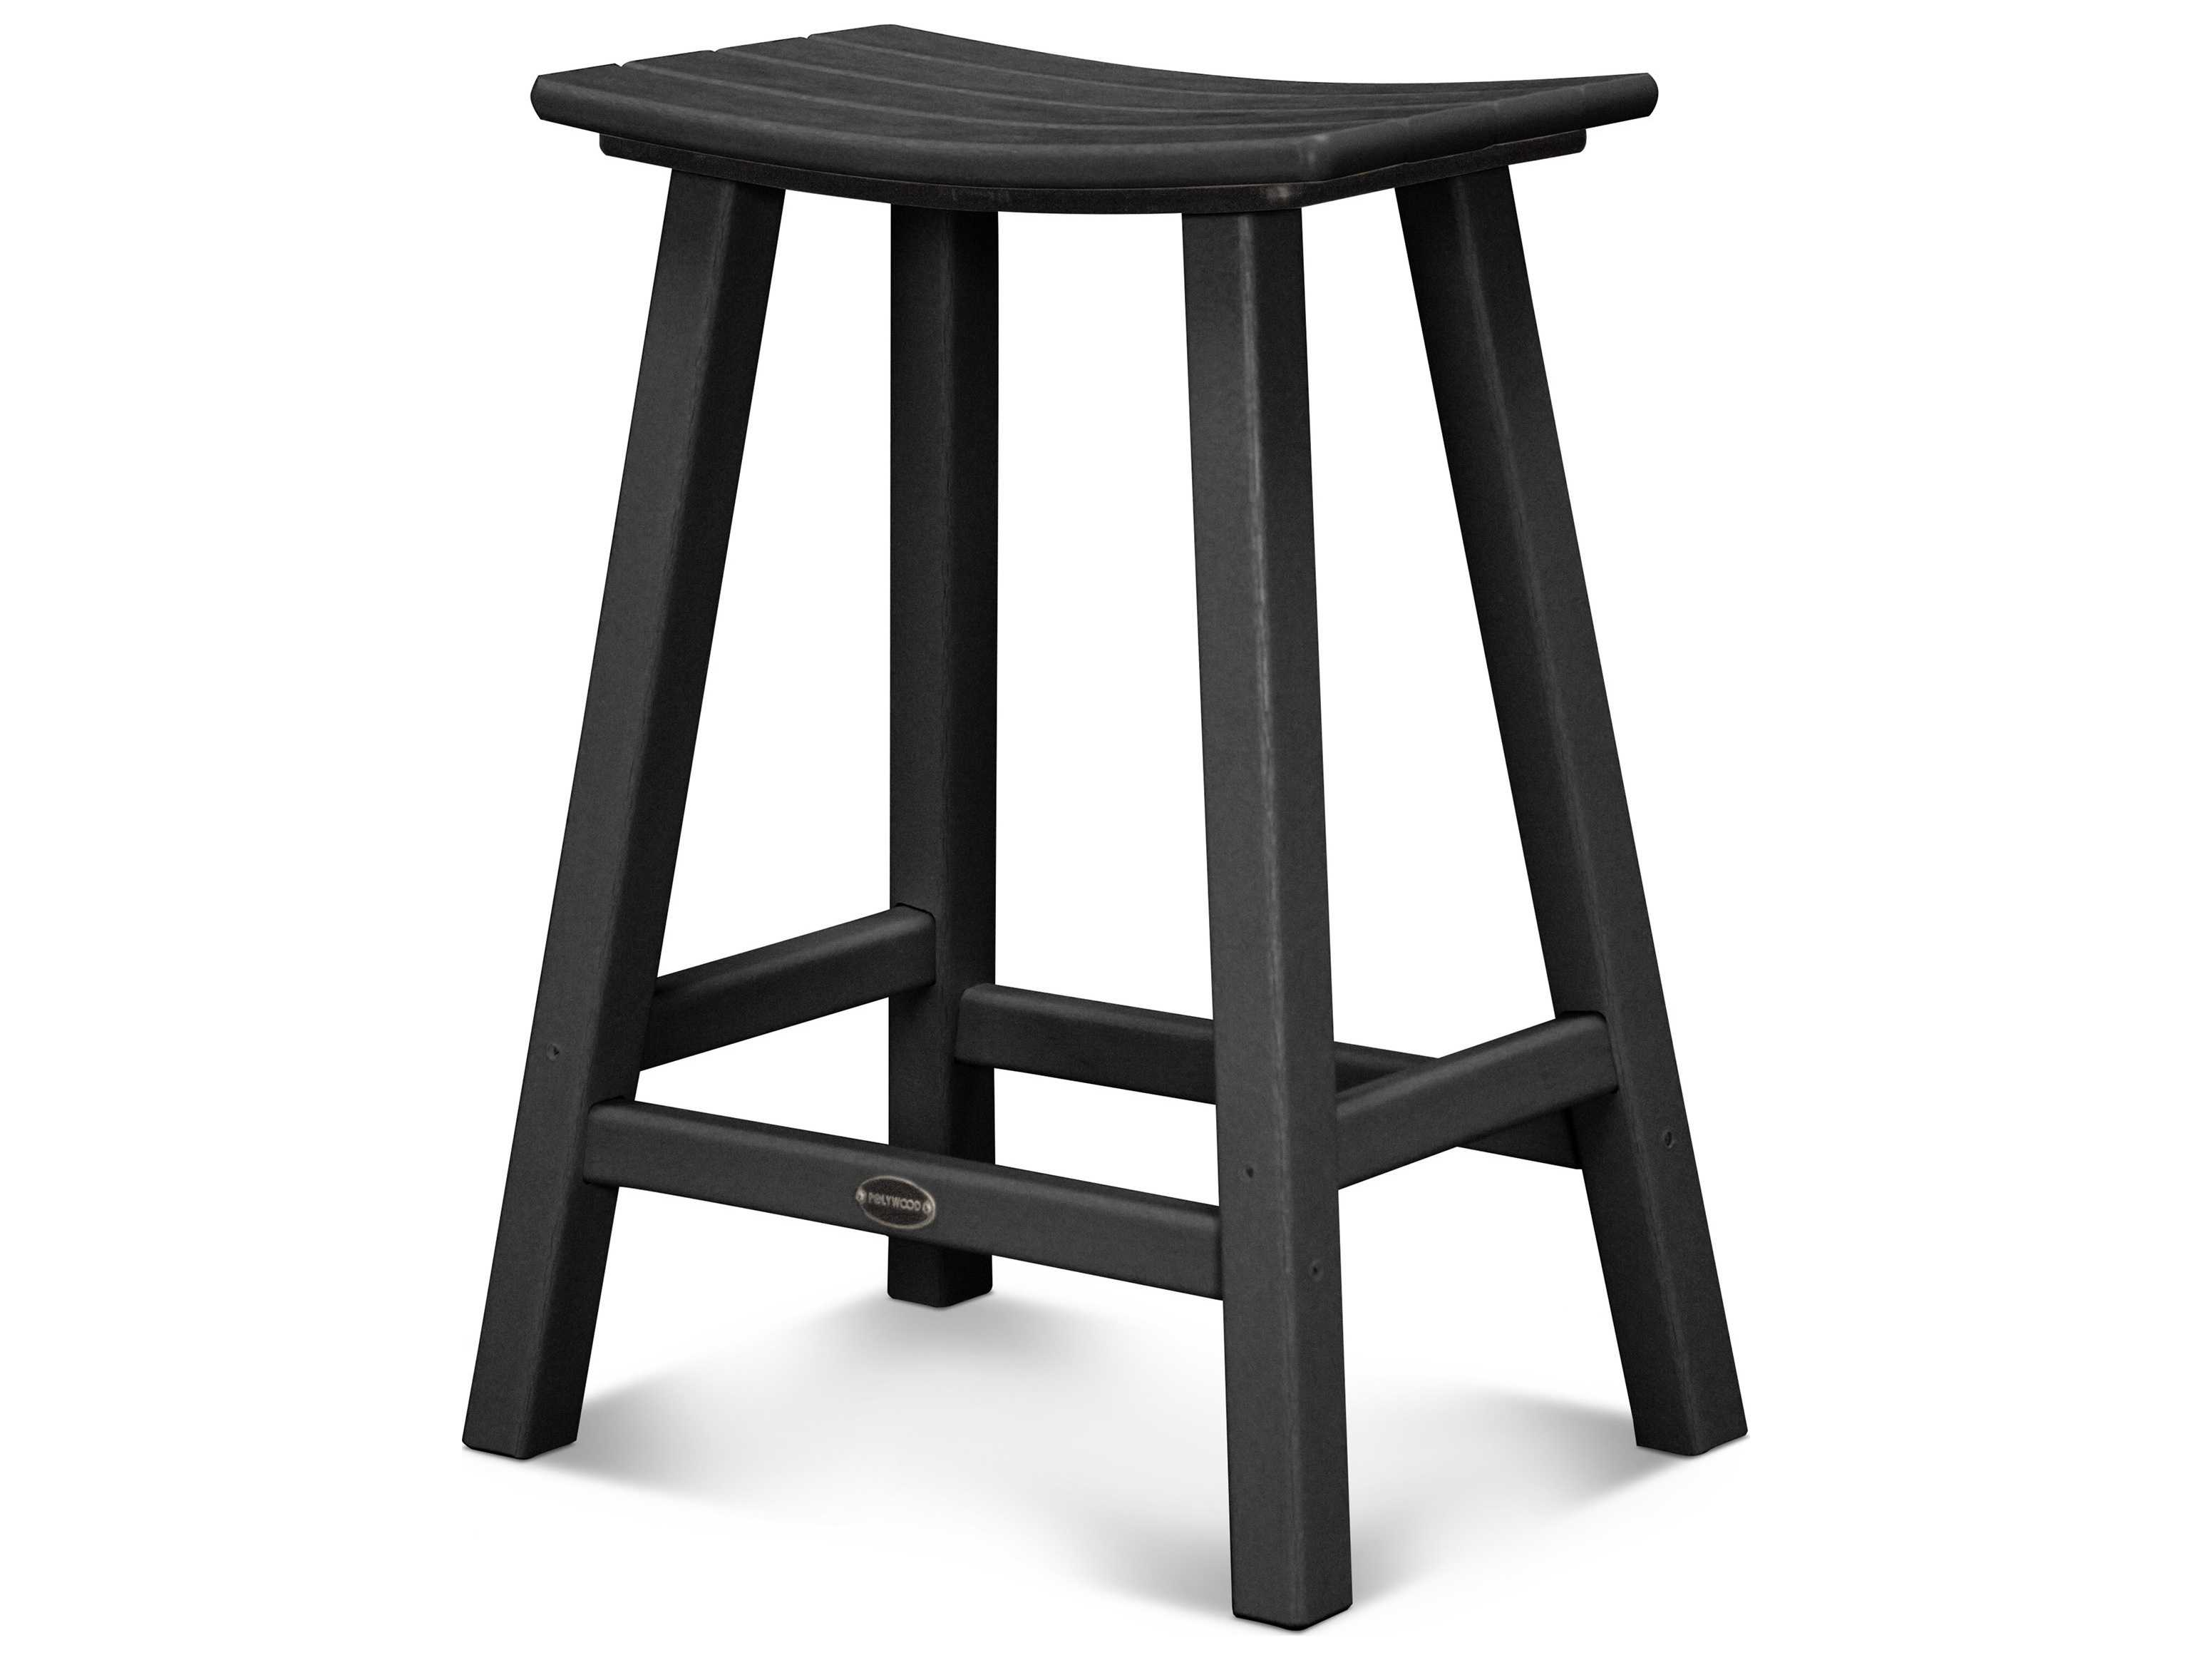 Polywood 174 Contempo Recycled Plastic 24 Saddle Bar Stool